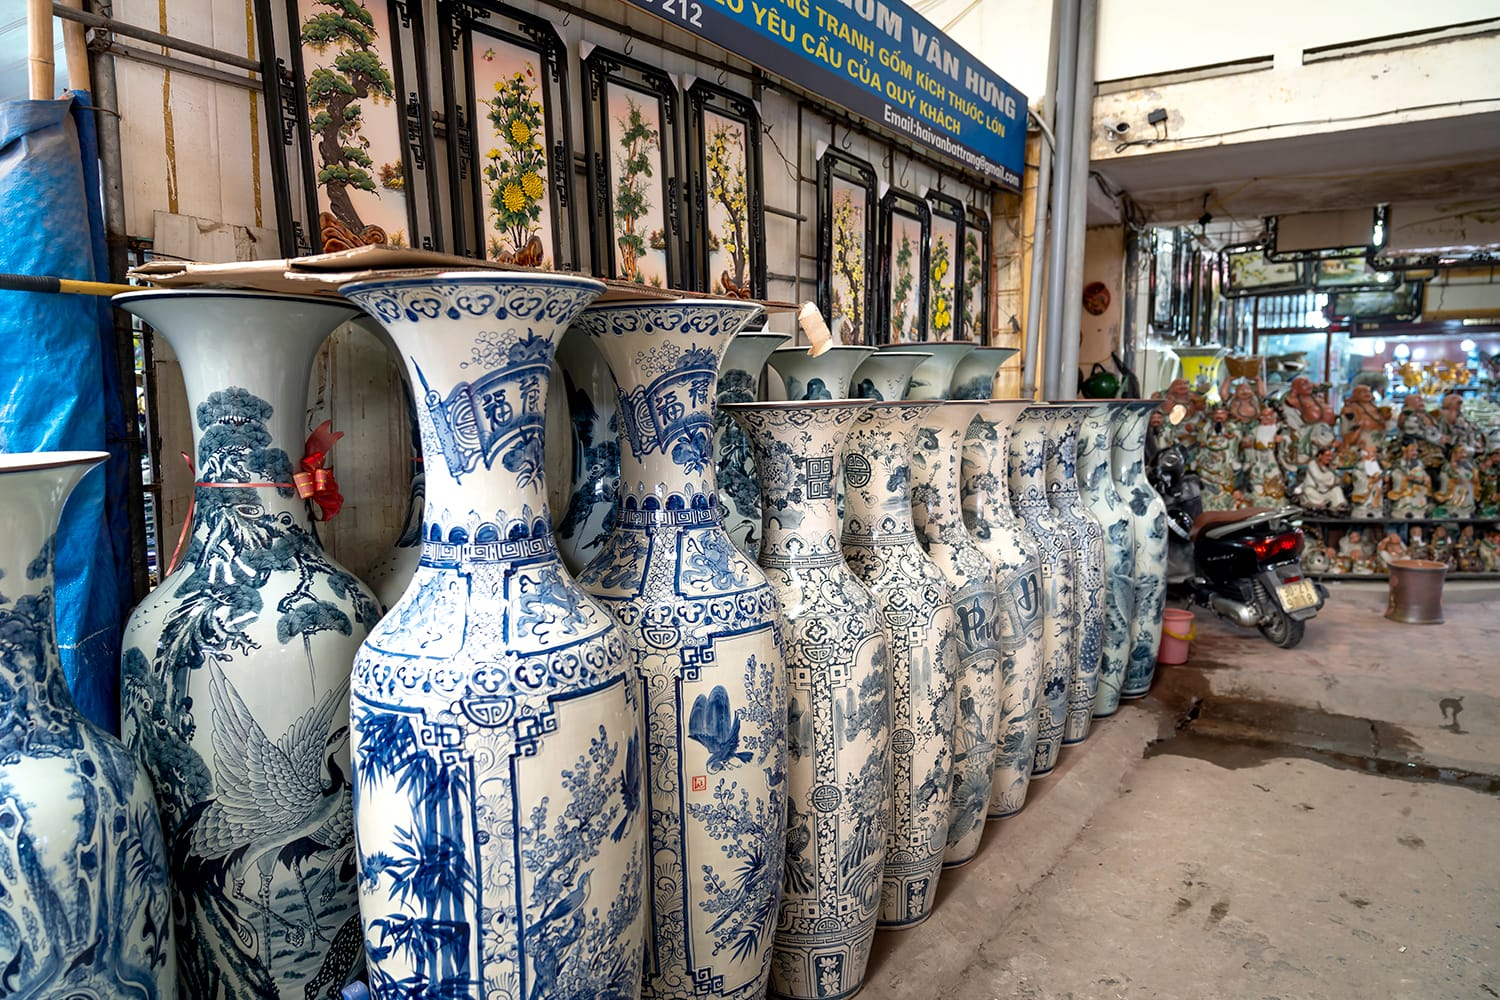 Traditional ceramic market in Bat Trang commune, Gia Lam district, Hanoi, Vietnam